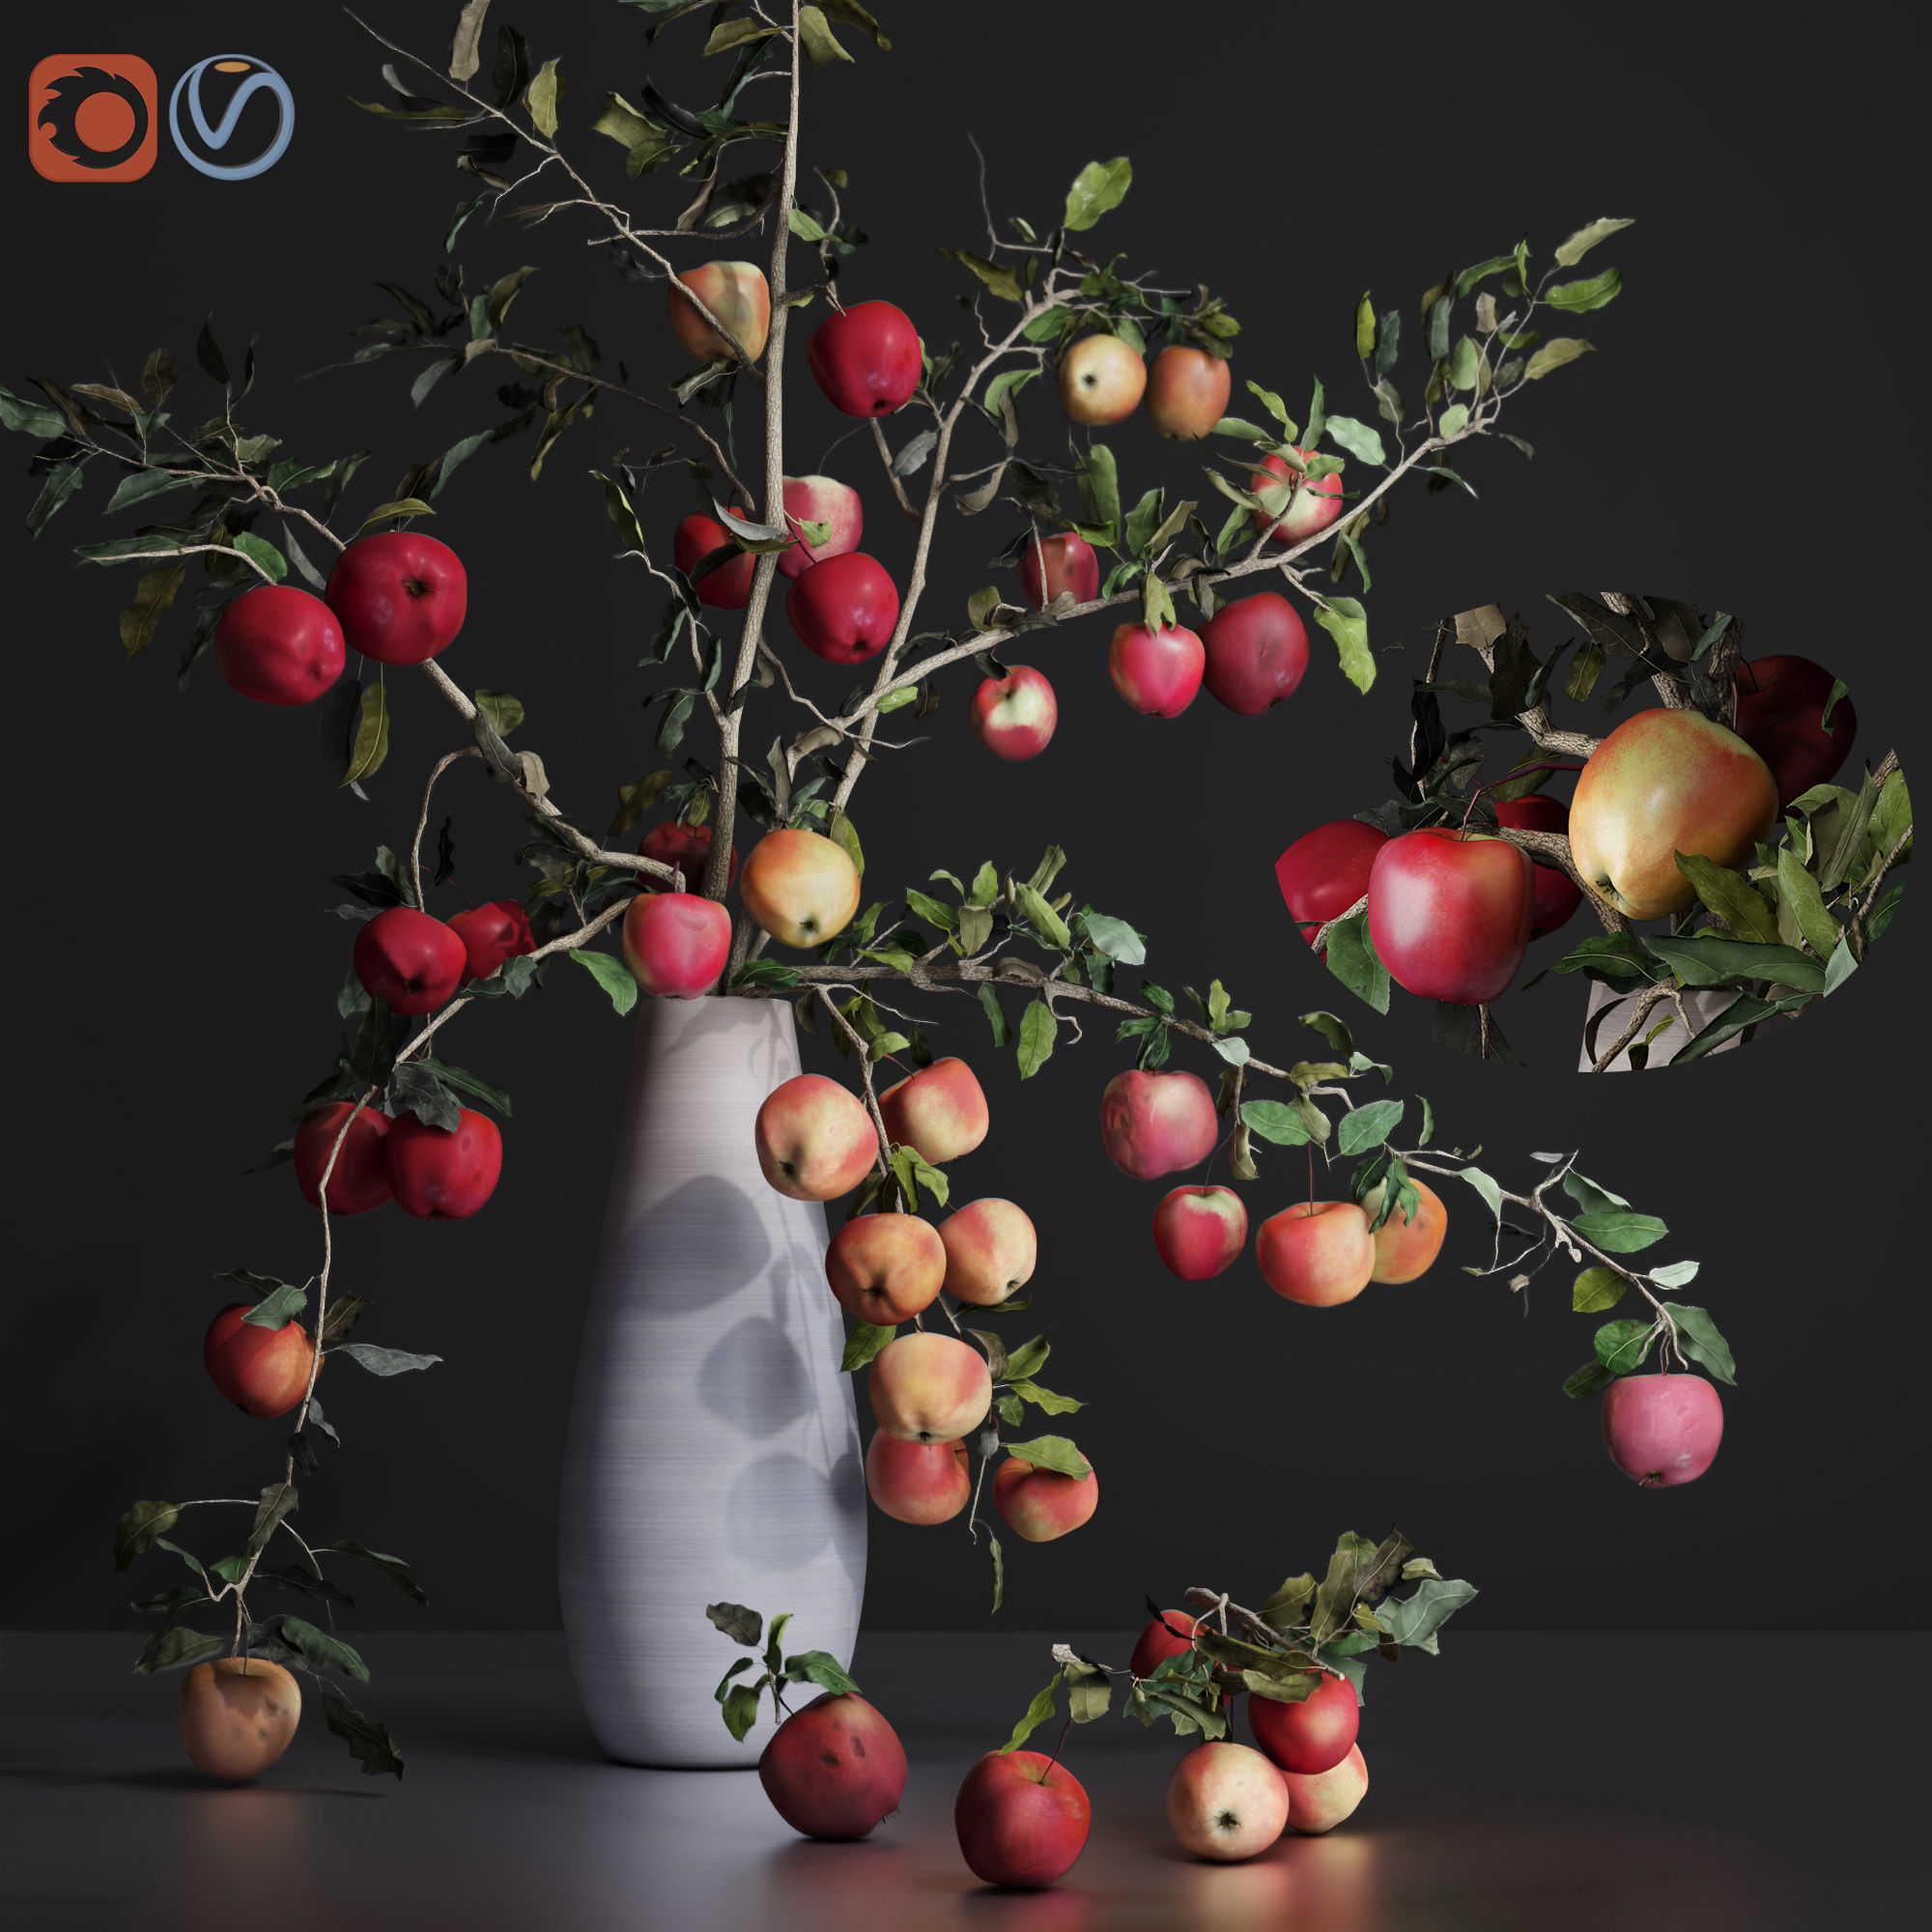 Red Cherry tomato apple branches Dry leaves Vase